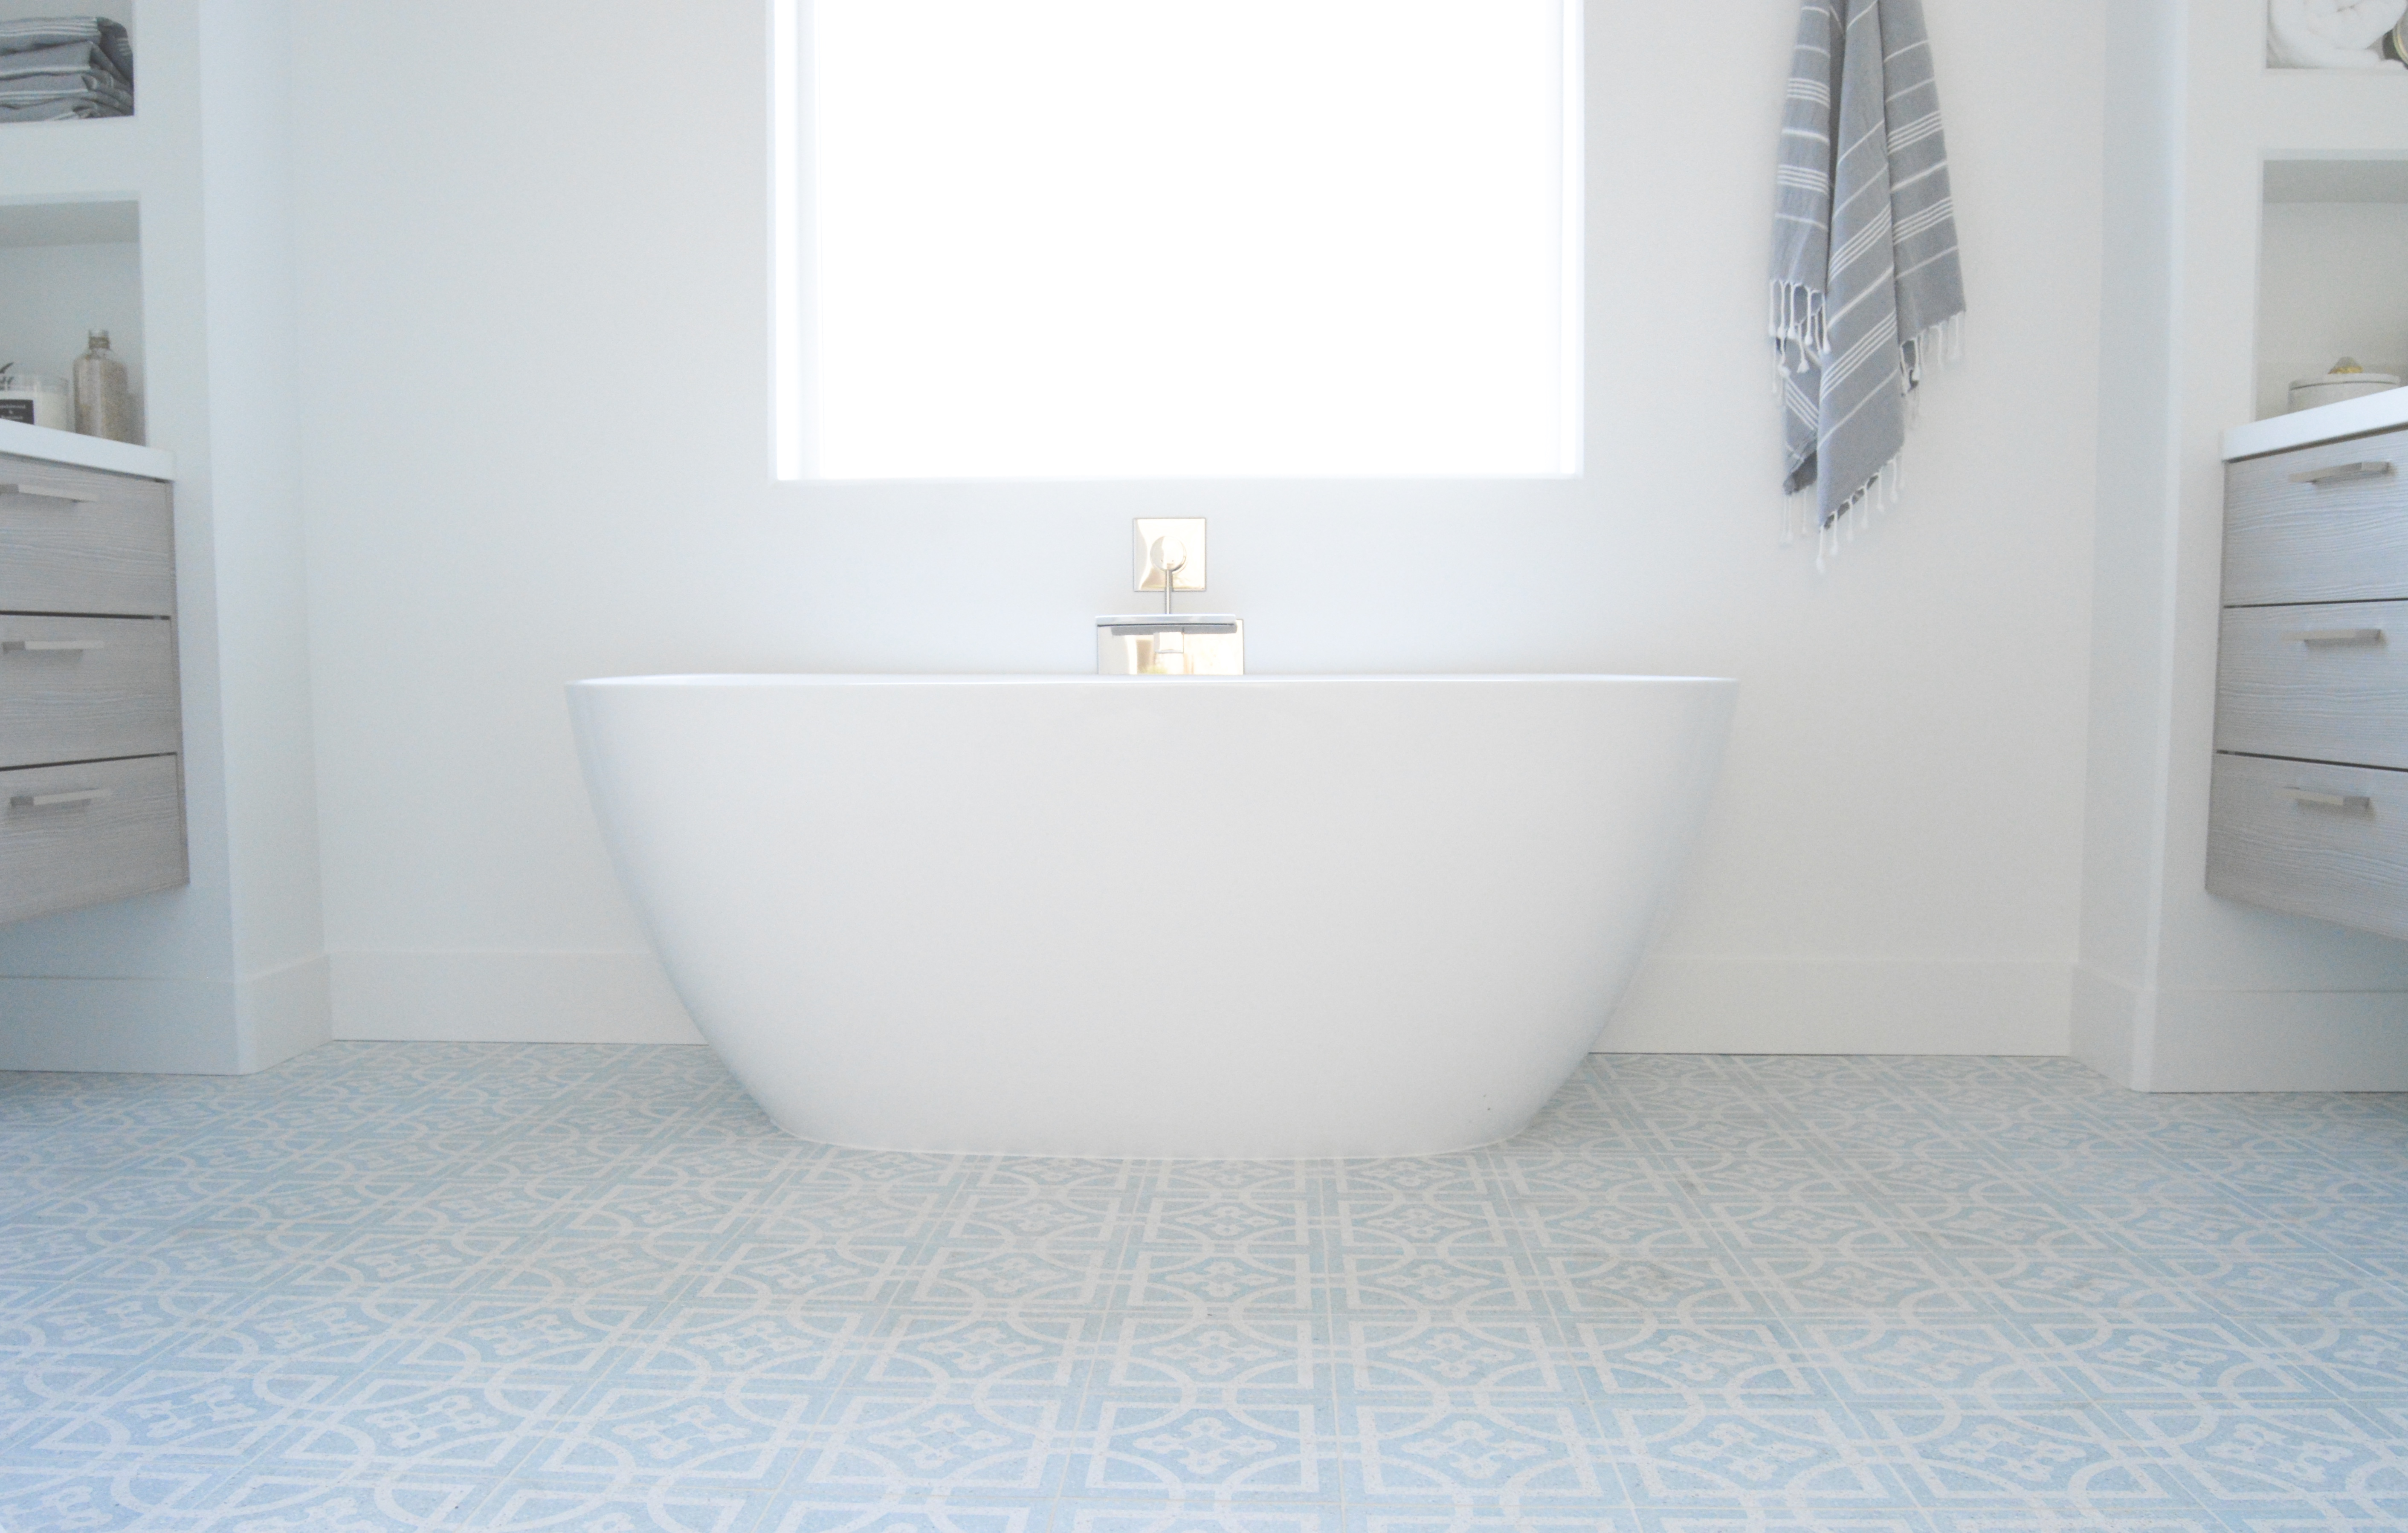 fish and arrow interiors janna parr blue patterned cement tile freestanding tub floating vanity built in shelving white blue and wood modern bathroom